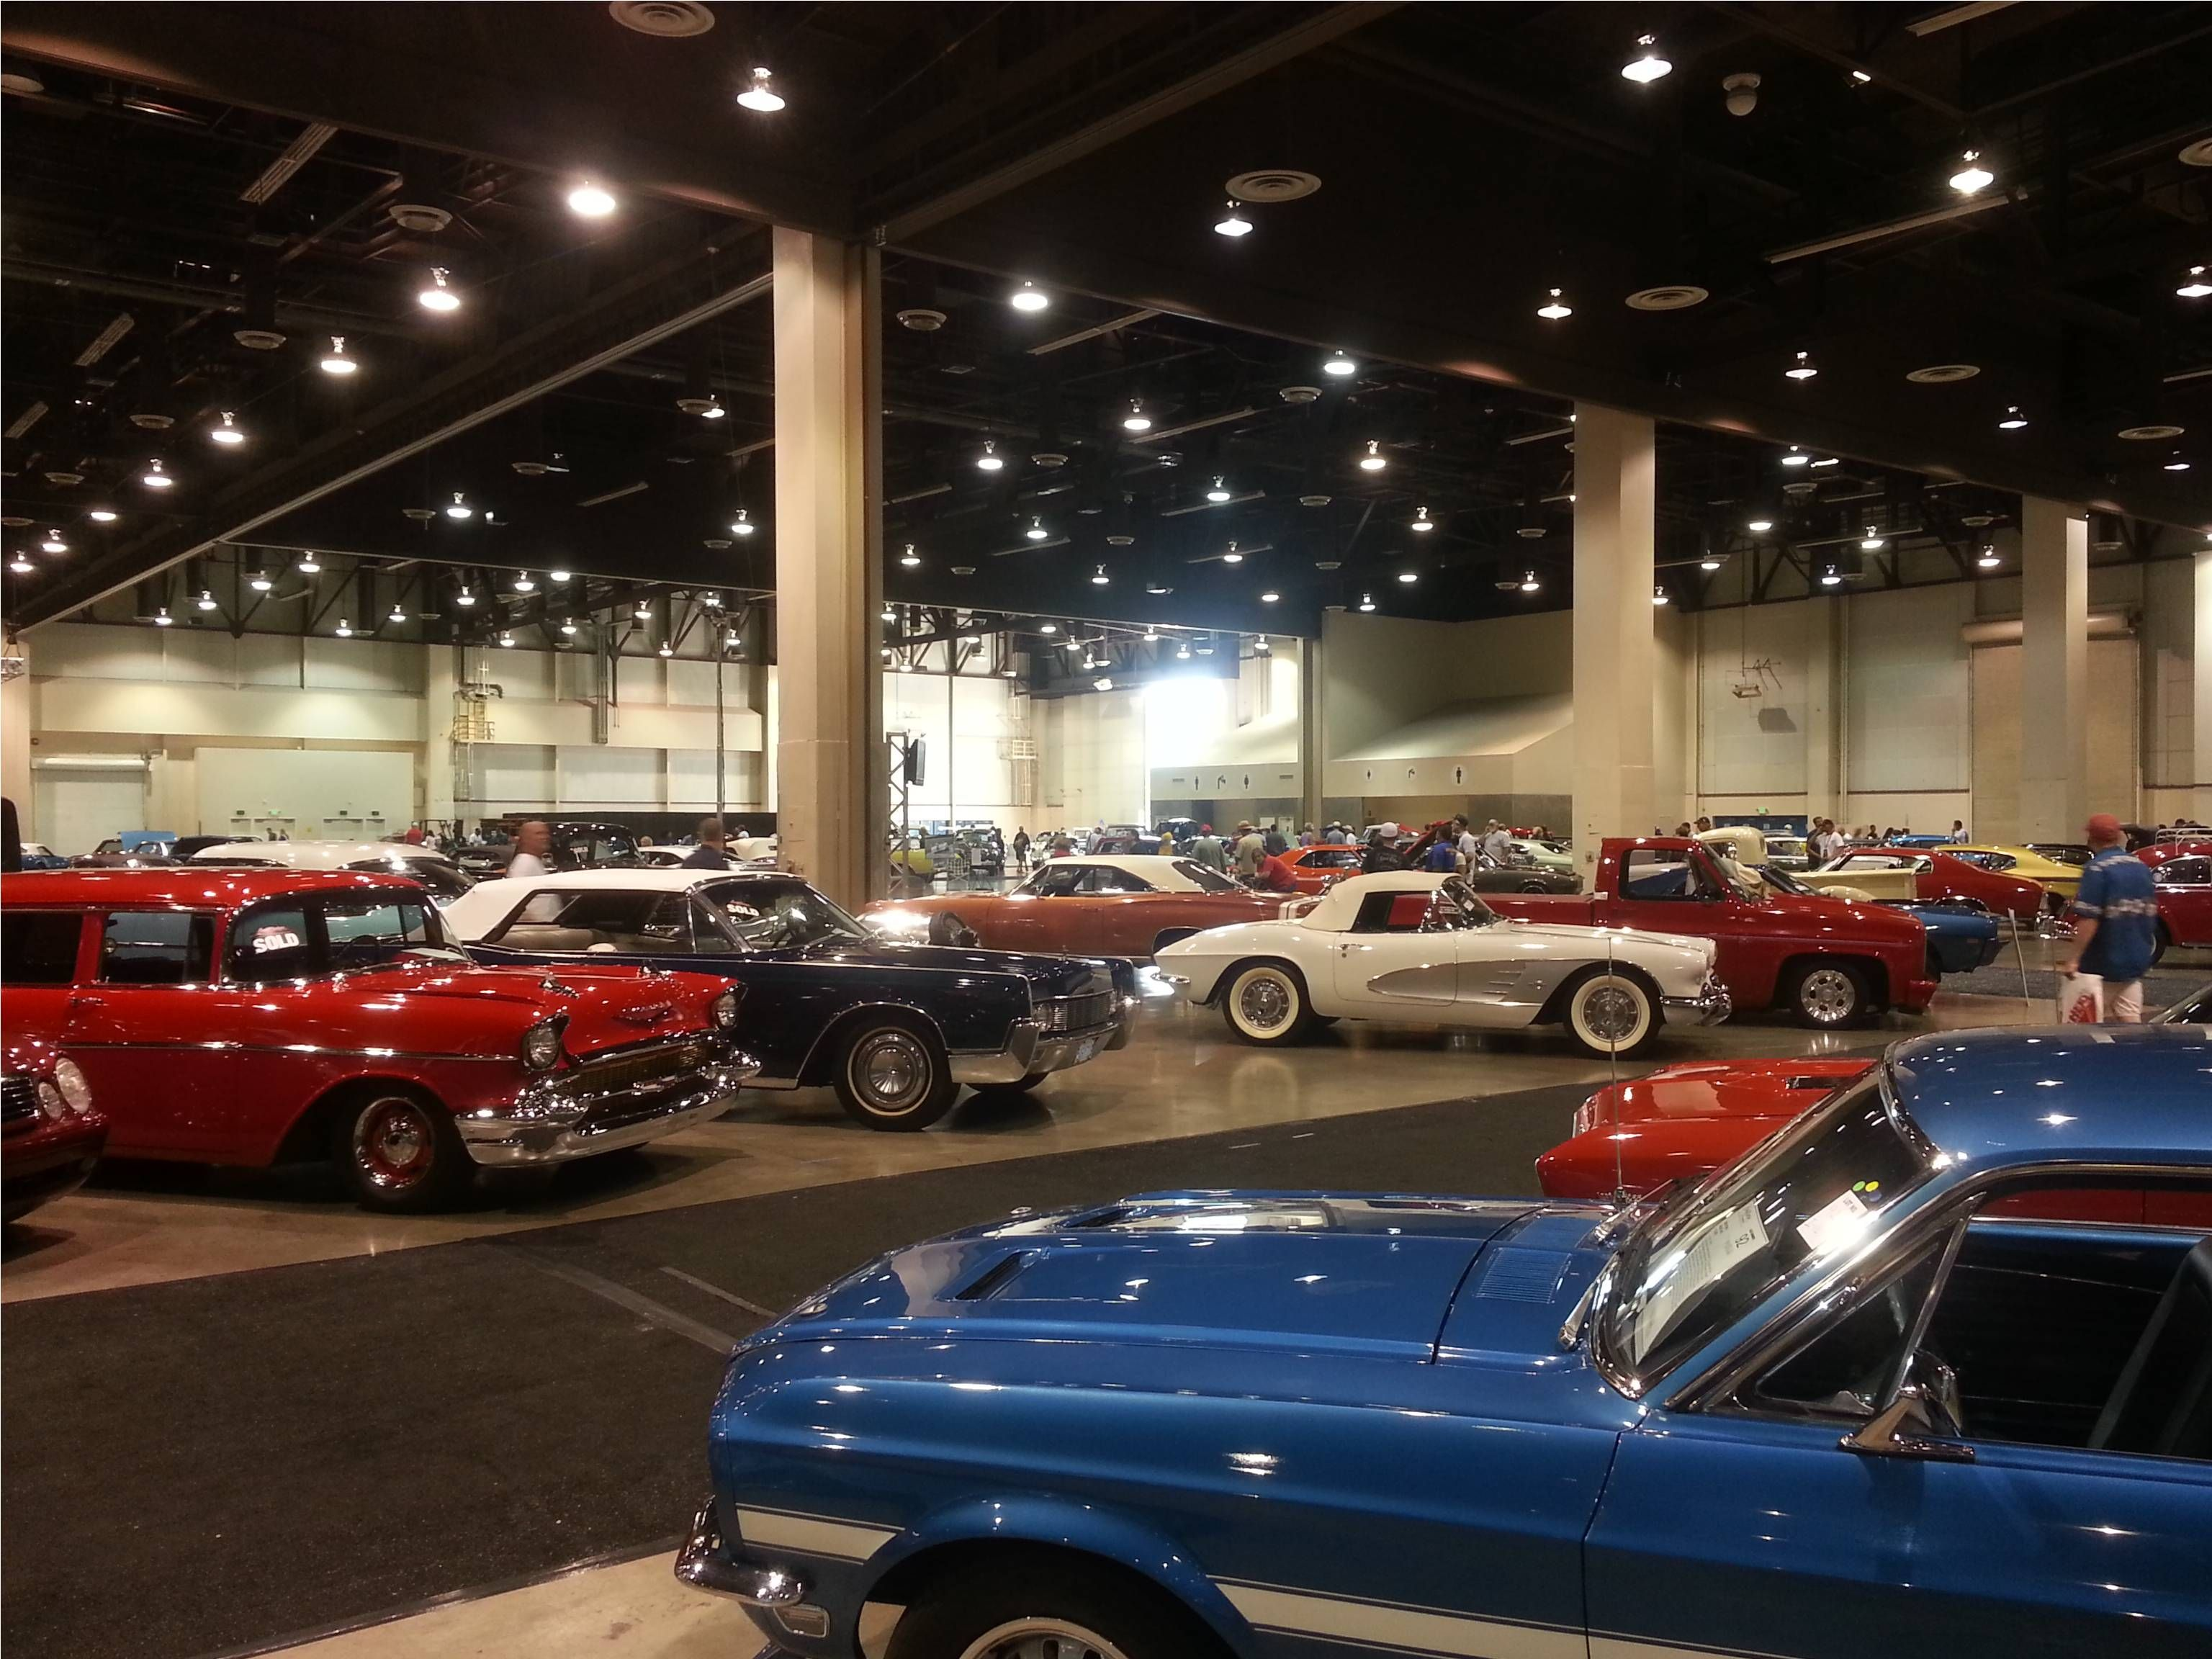 So Many Awesome Cars To Buy At The BarrettJackson Car Auction Held - Car show reno sparks convention center